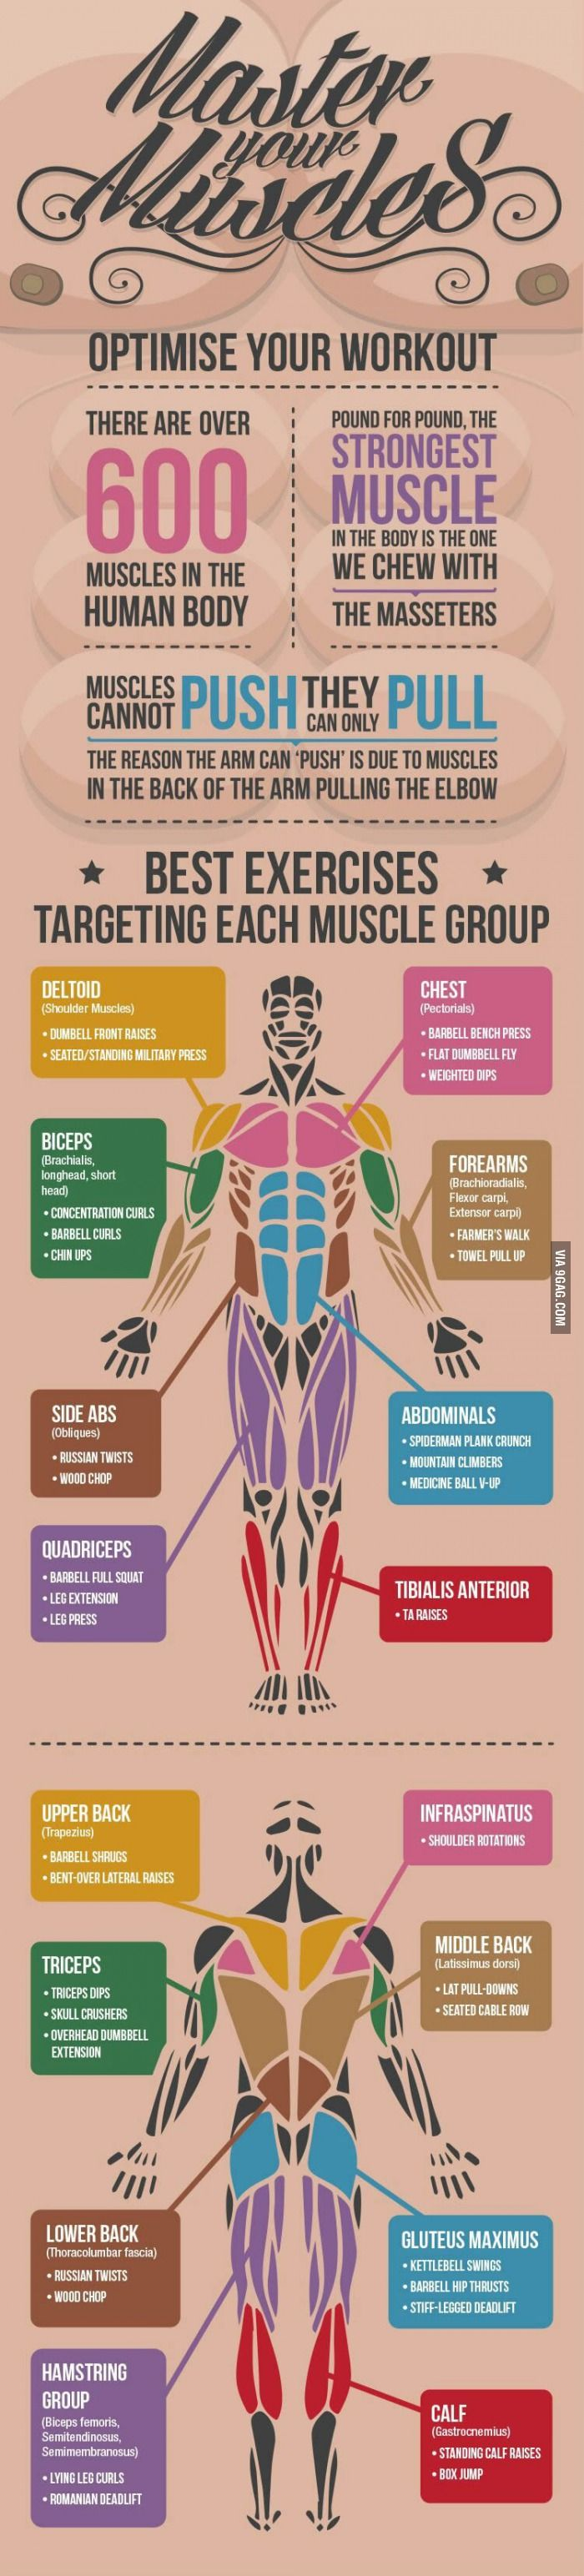 Best workouts available for each muscle